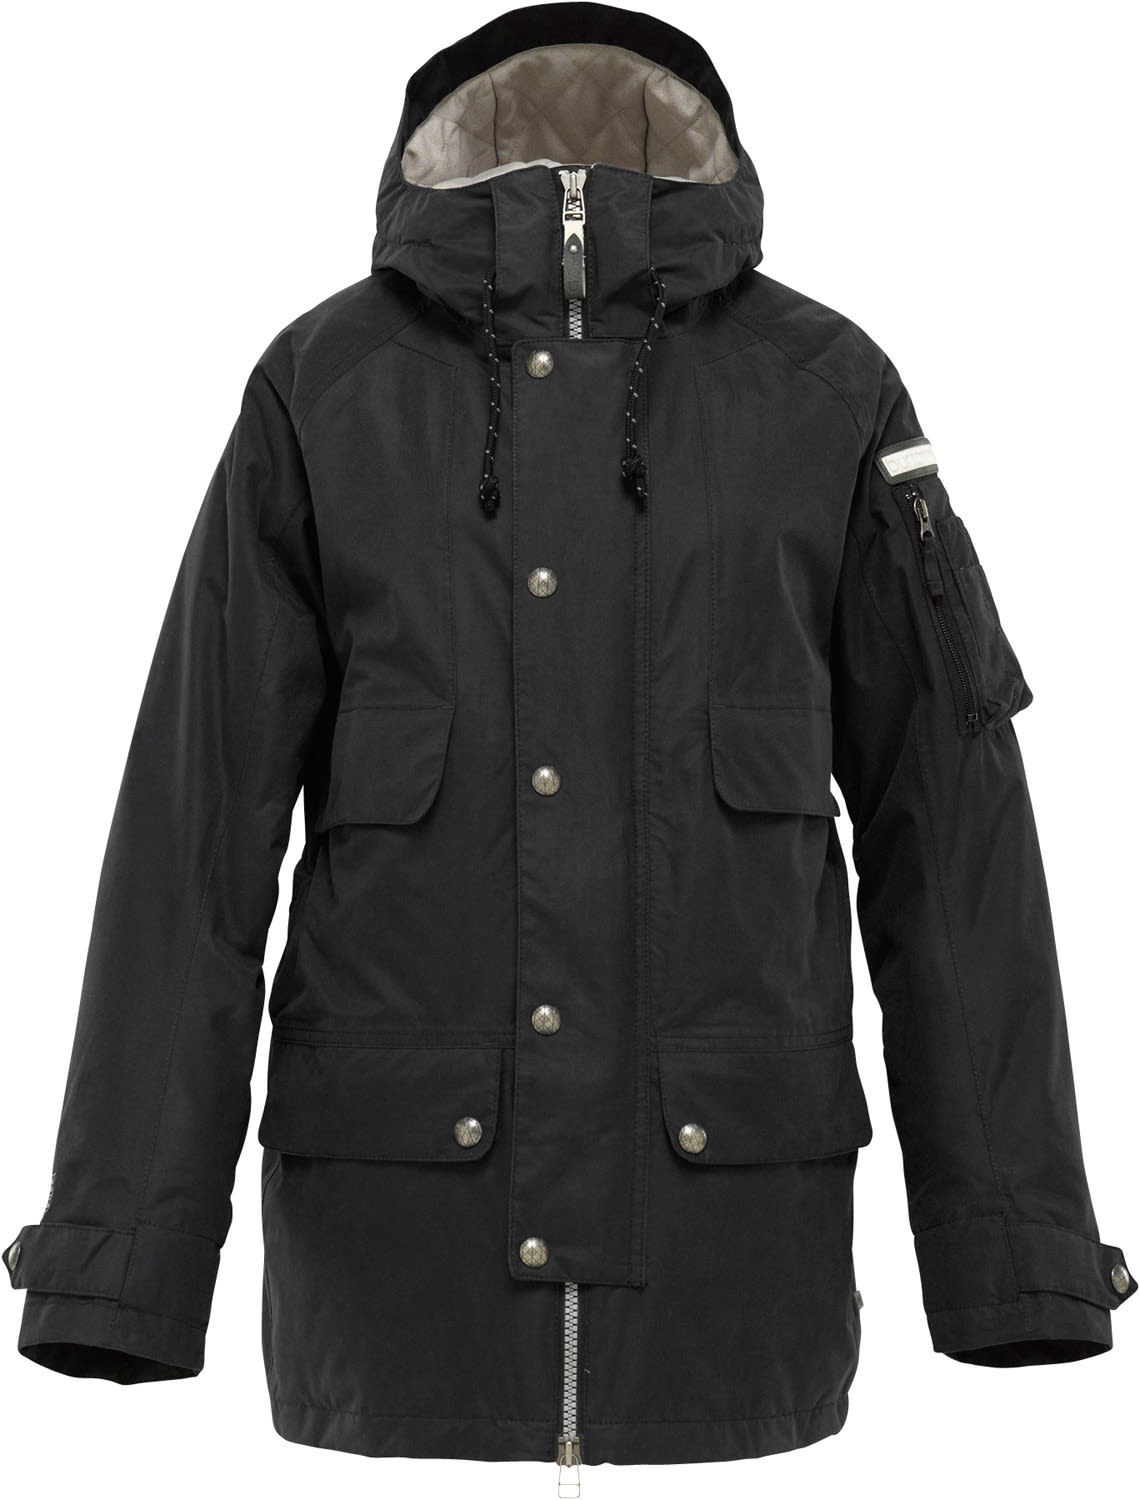 Shop for Burton Dylan Snowboard Jacket True Black - Women's